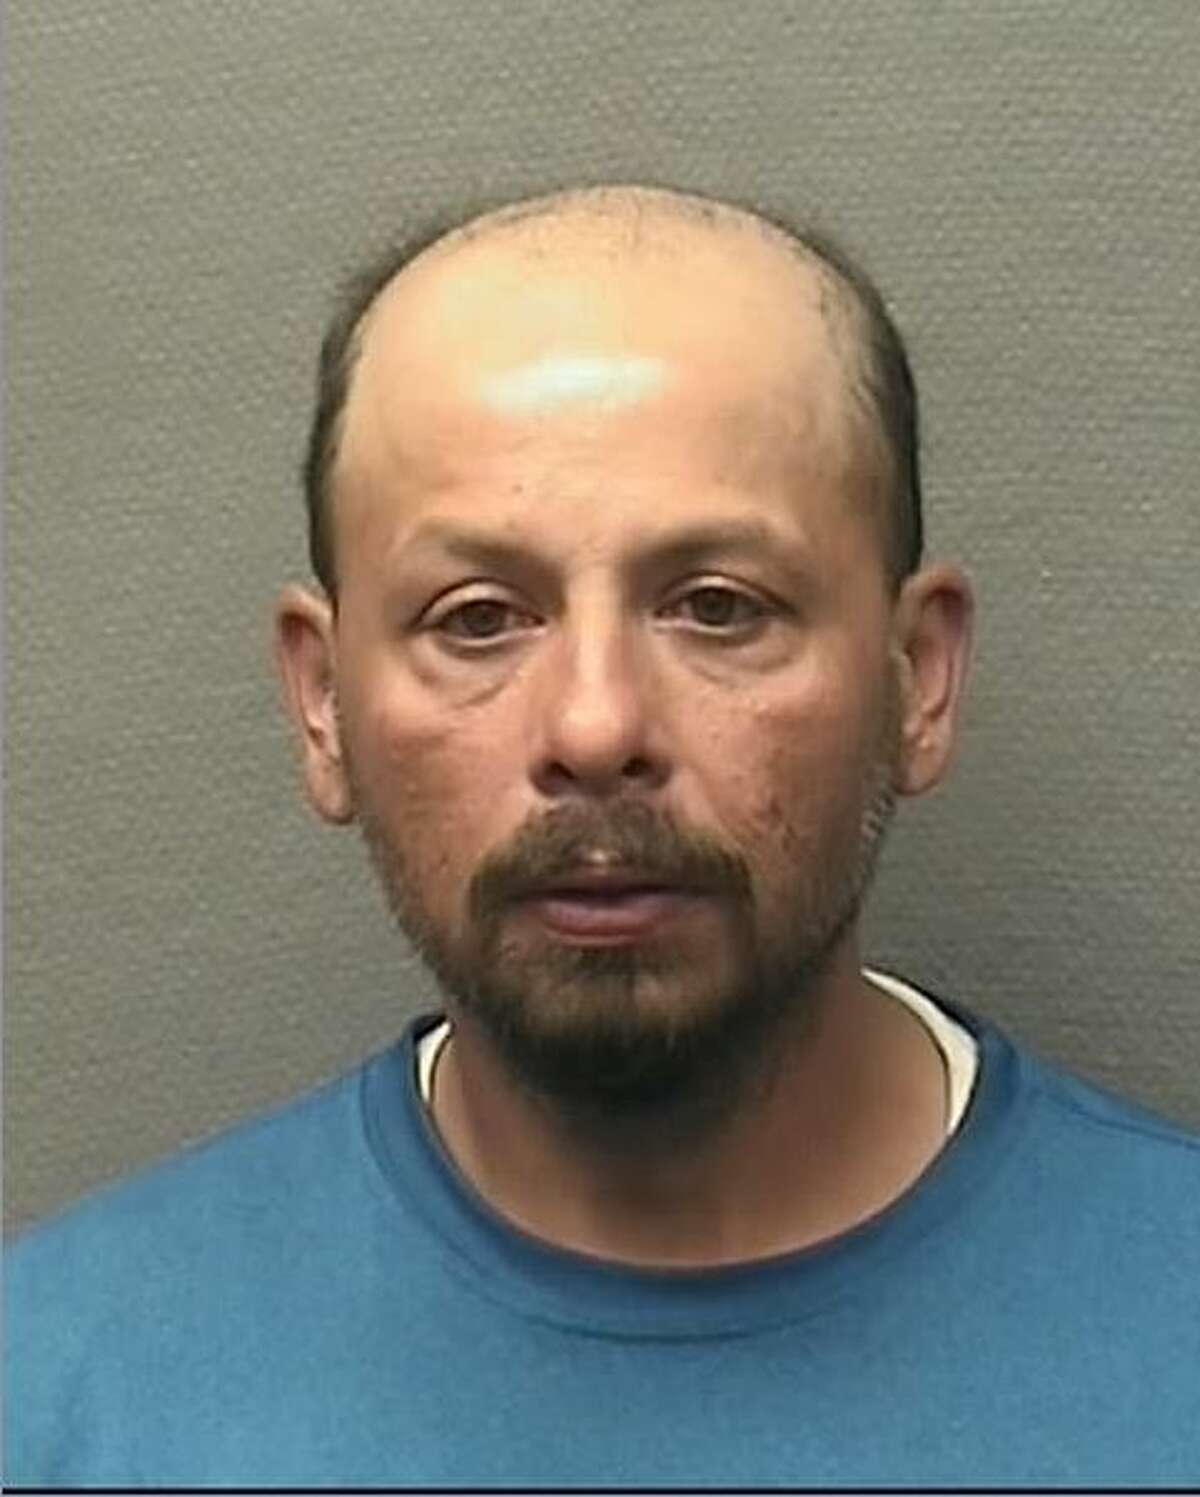 Paul Frank, 42, is charged with burglary. According to the Harris County Precinct 1 Constable's Office, Thompson was part of a scam where he posed as a tree trimmer and then robbed homes.